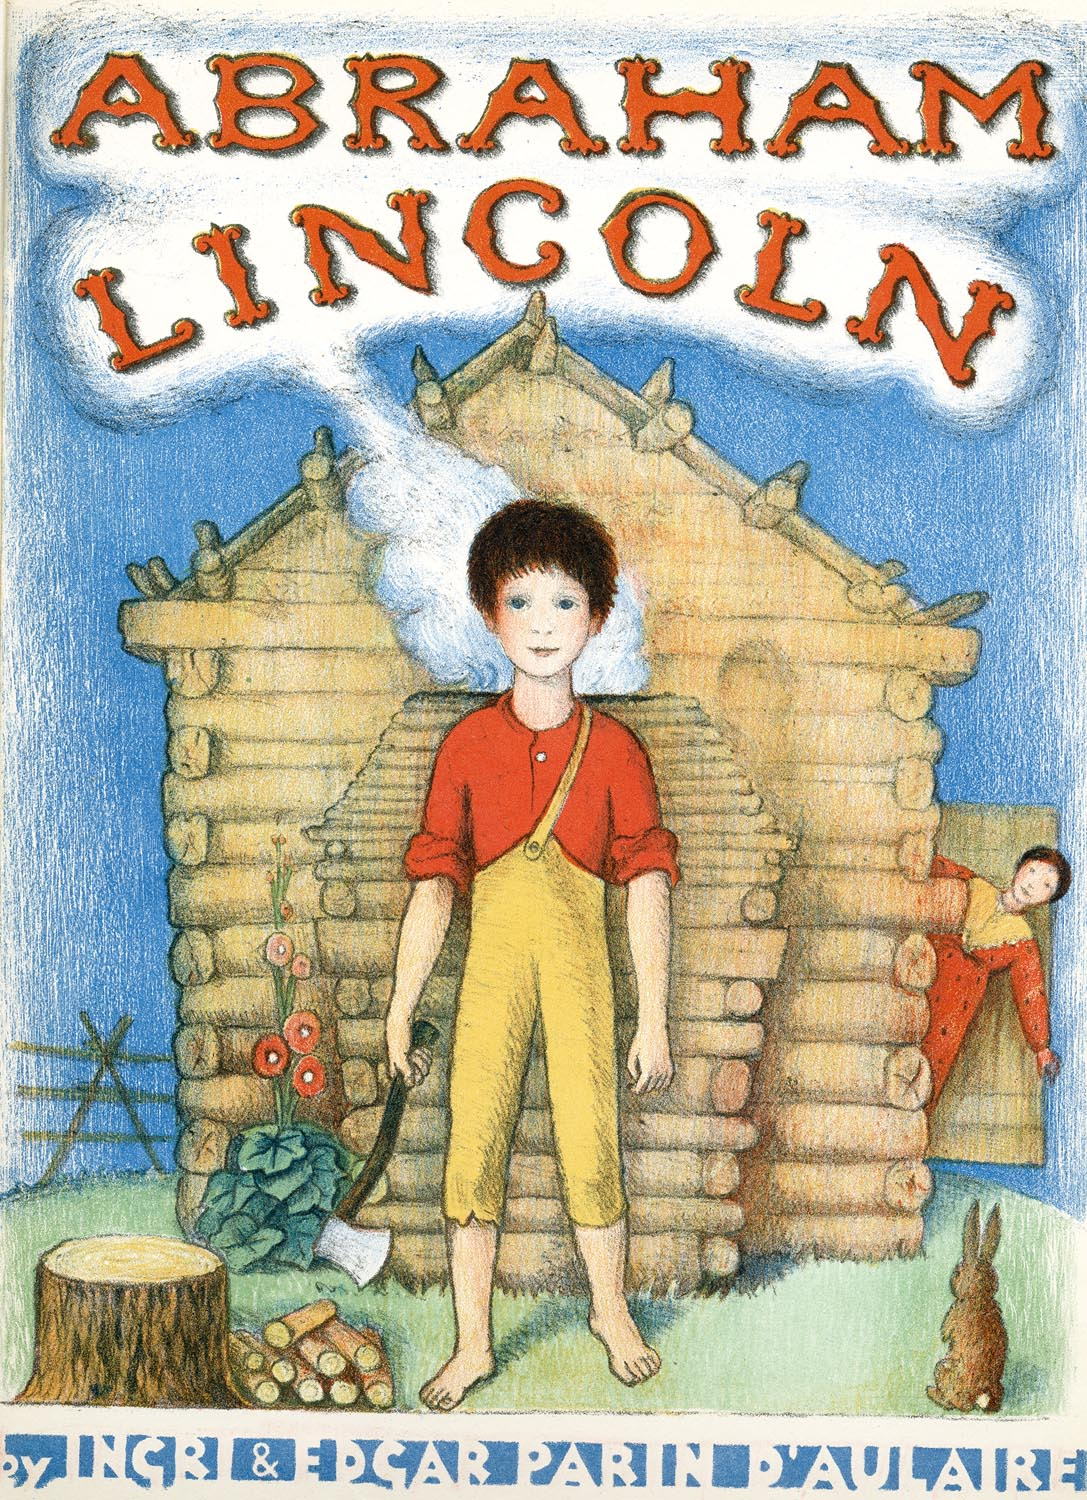 Abraham Lincoln   by Ingri & Edgar Parin d'Aulaire. First edition.